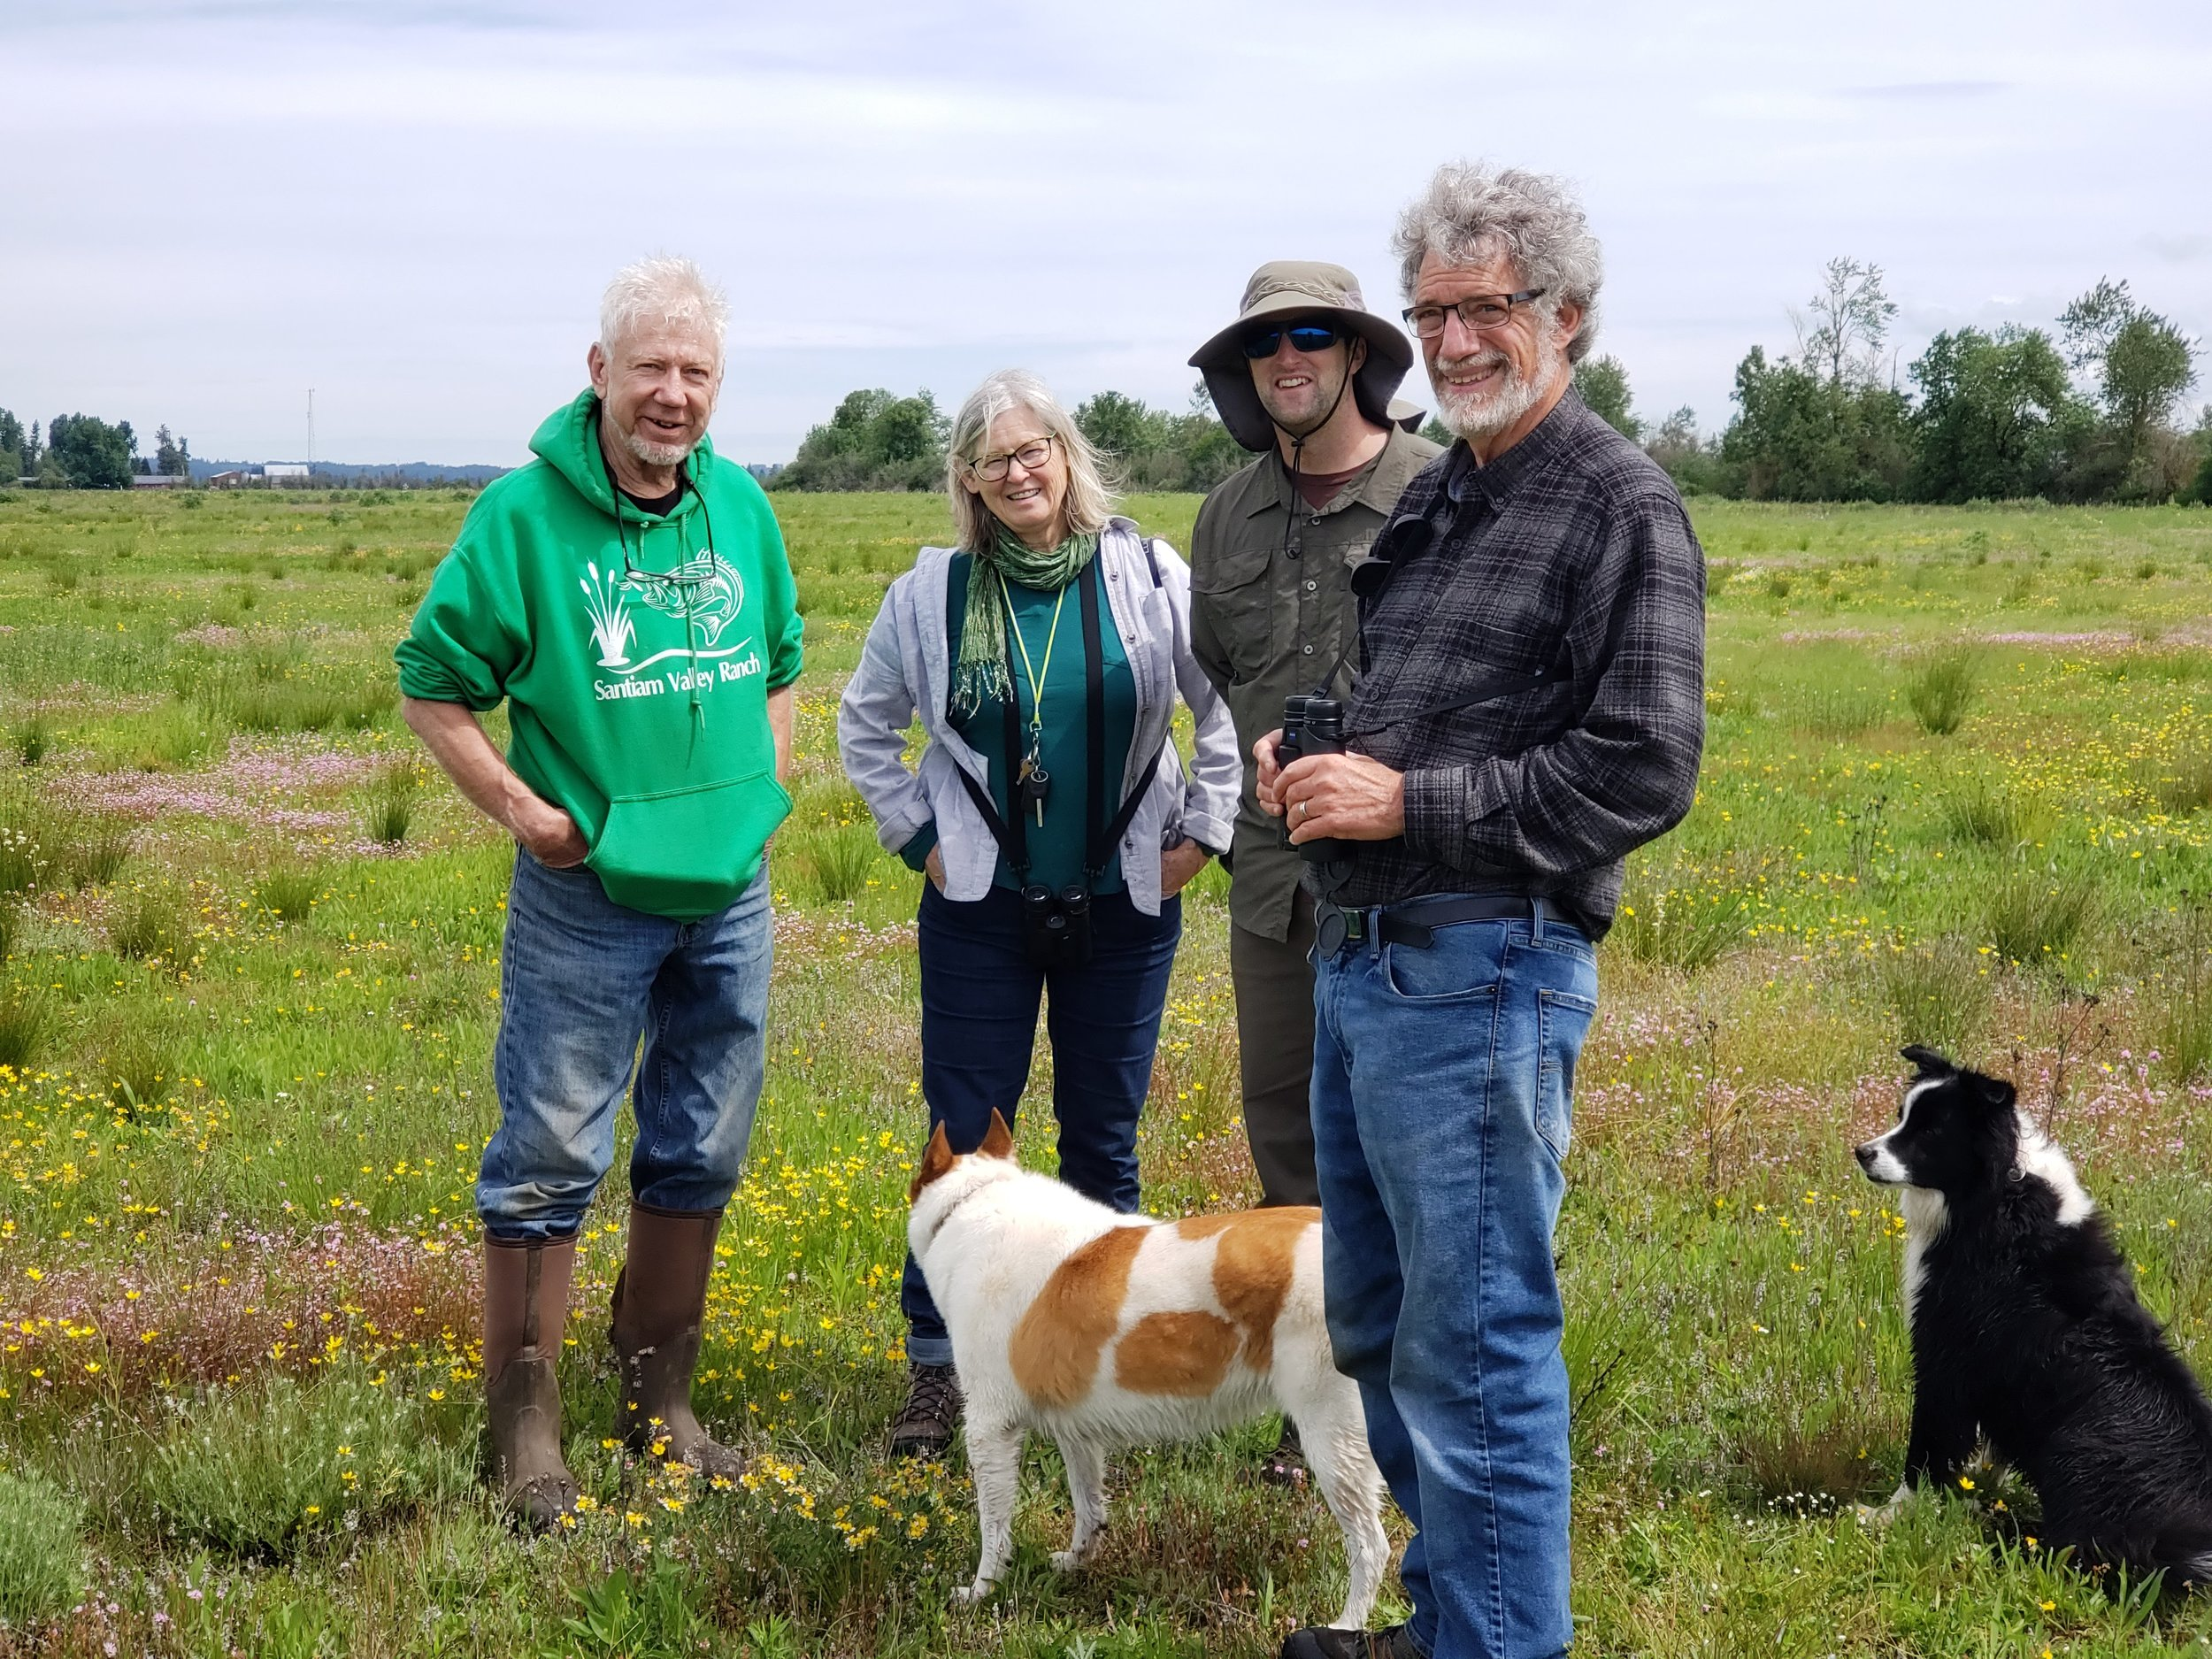 Ken, Jane, Luke Fitzpatrick, Mark and our Sauvie Island buddies, Ray and Katie.